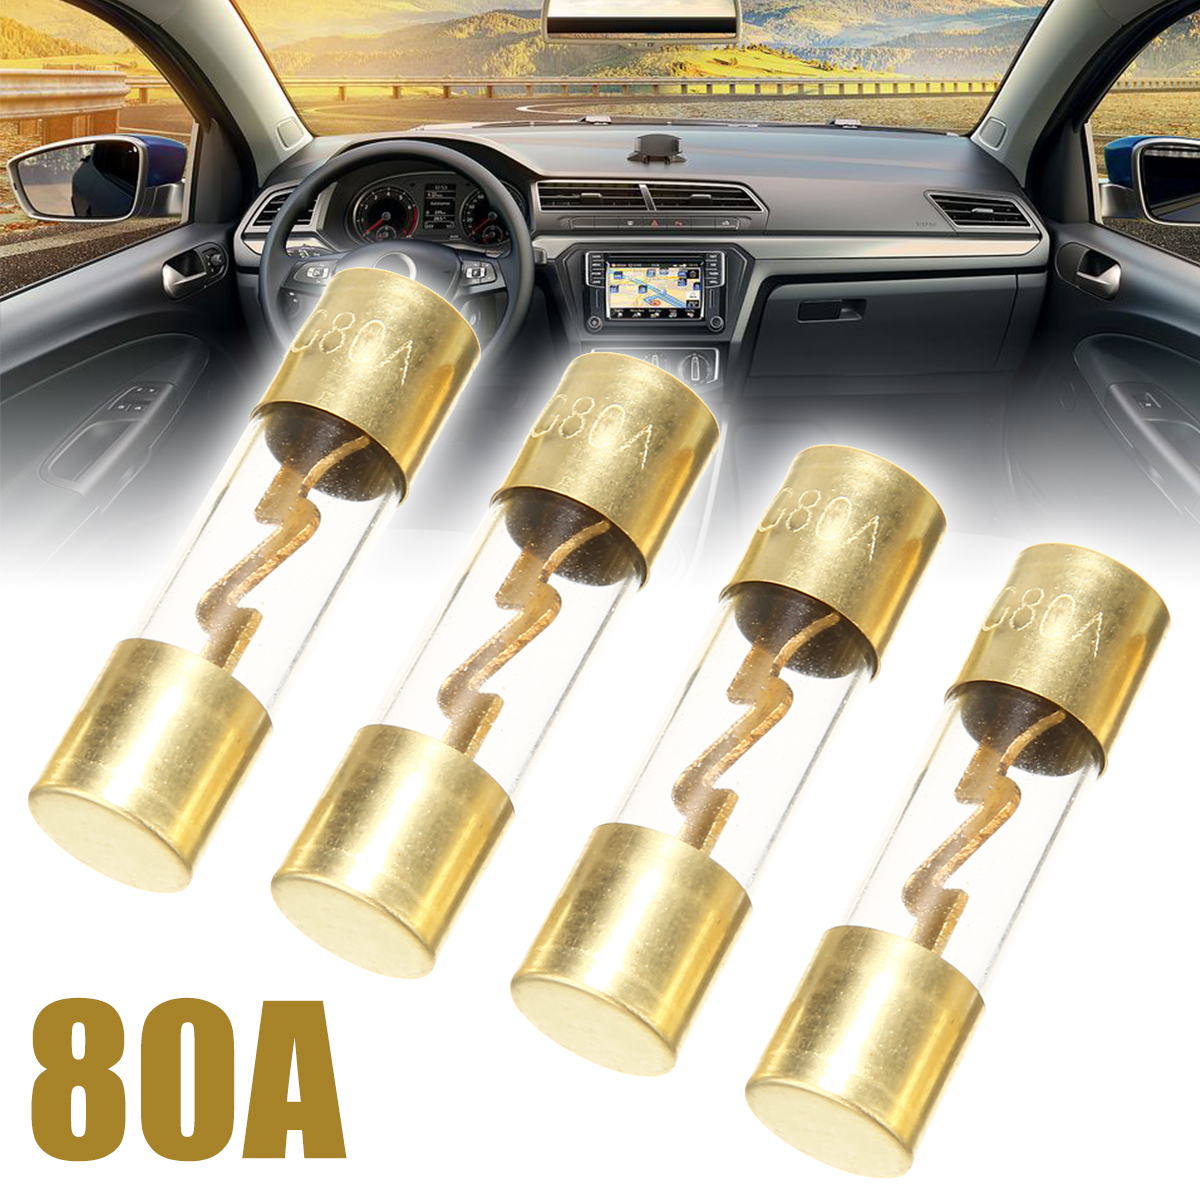 4x 80A Gold Plated Glass AGU Fuse Fuses Pack Car Audio Amp Amplifier Holder